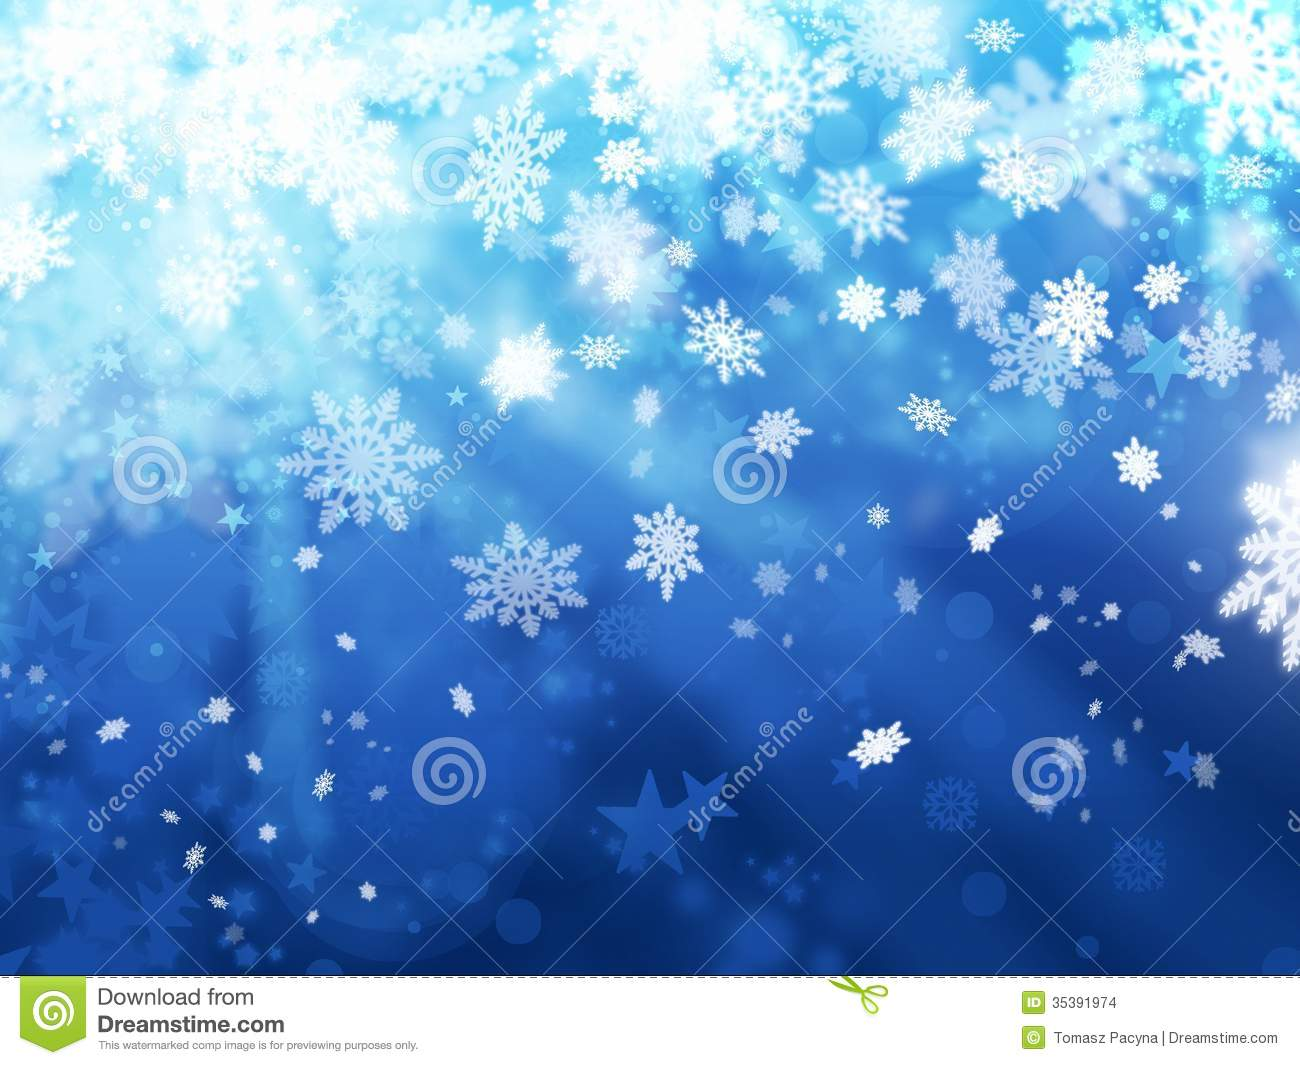 Free Snow Falling Animated Wallpaper Xmas Snoflakes Abstract Winter Background Stock Images